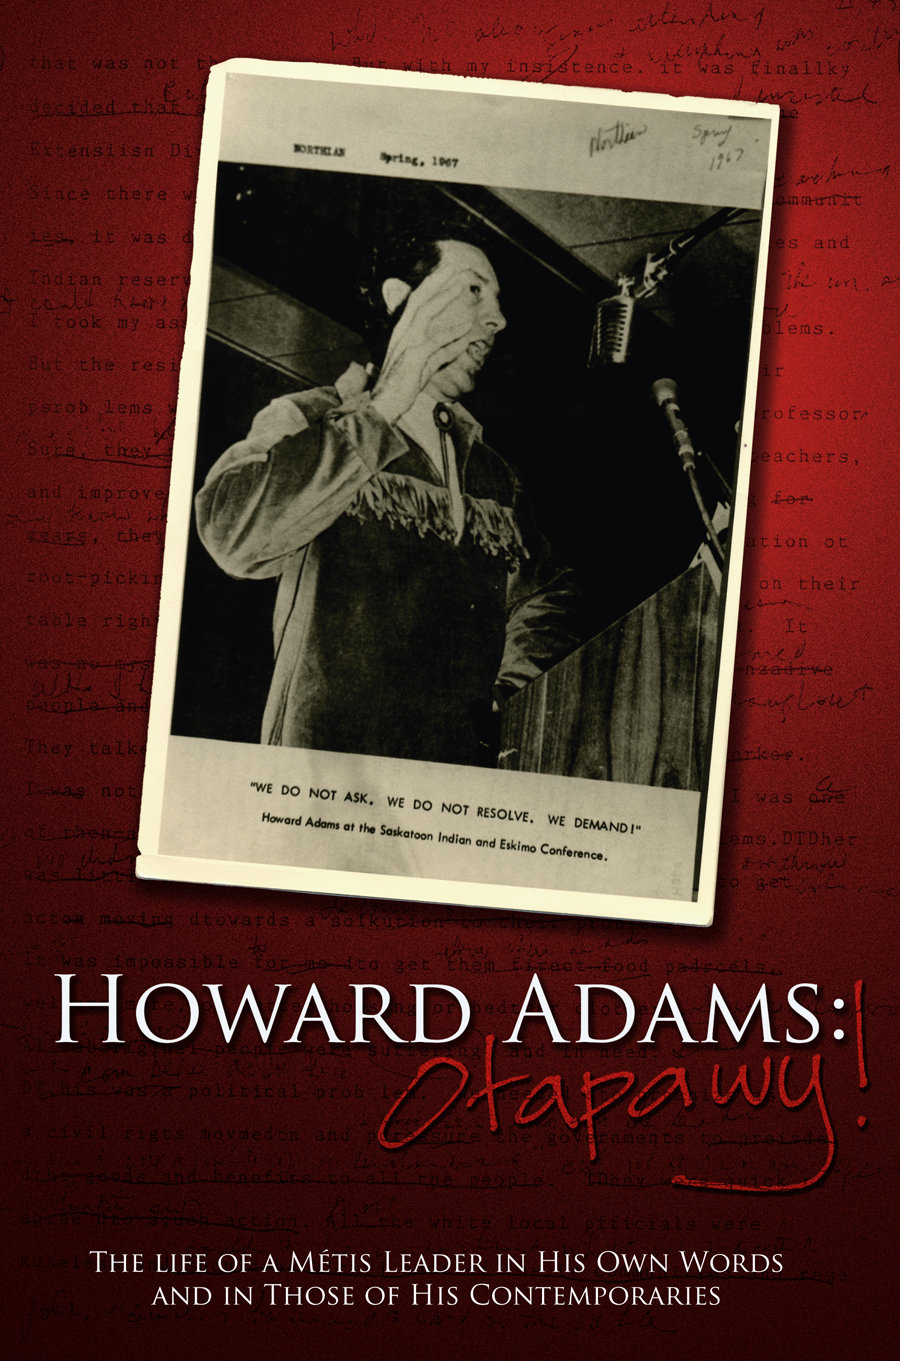 Howard Adams: Otapawy!